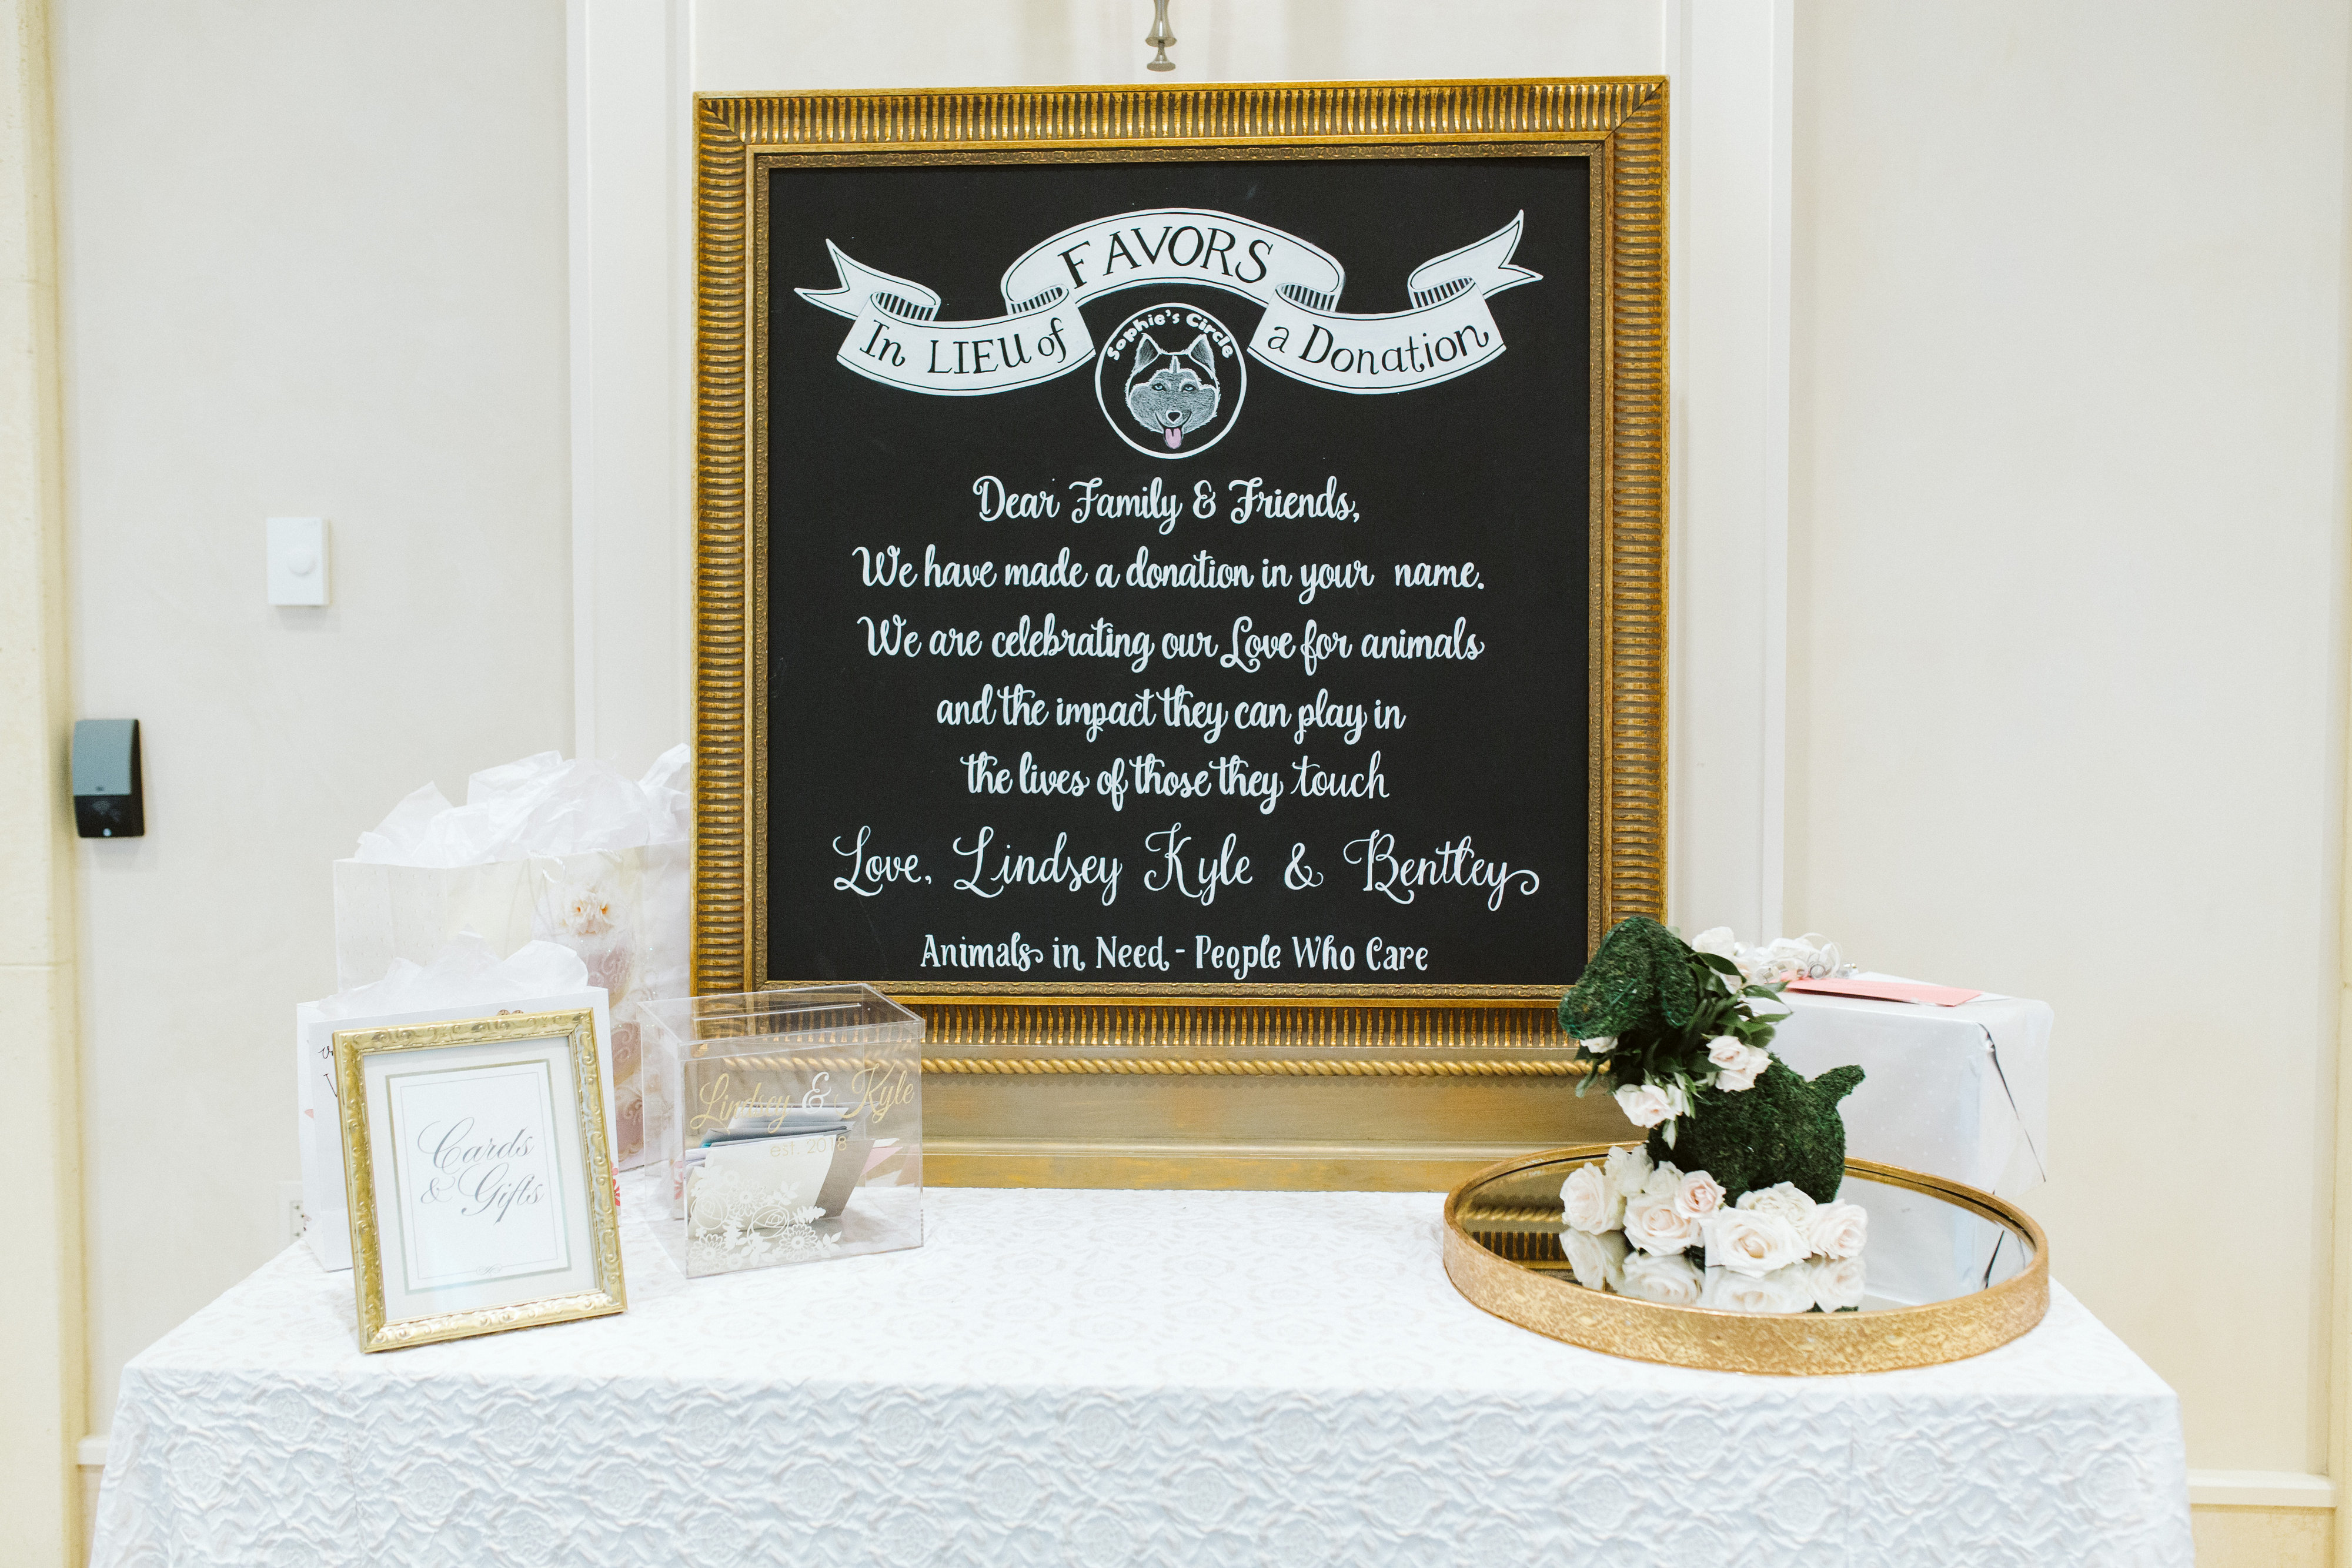 Lindsey and Kyle's Wedding - Chalk Shop